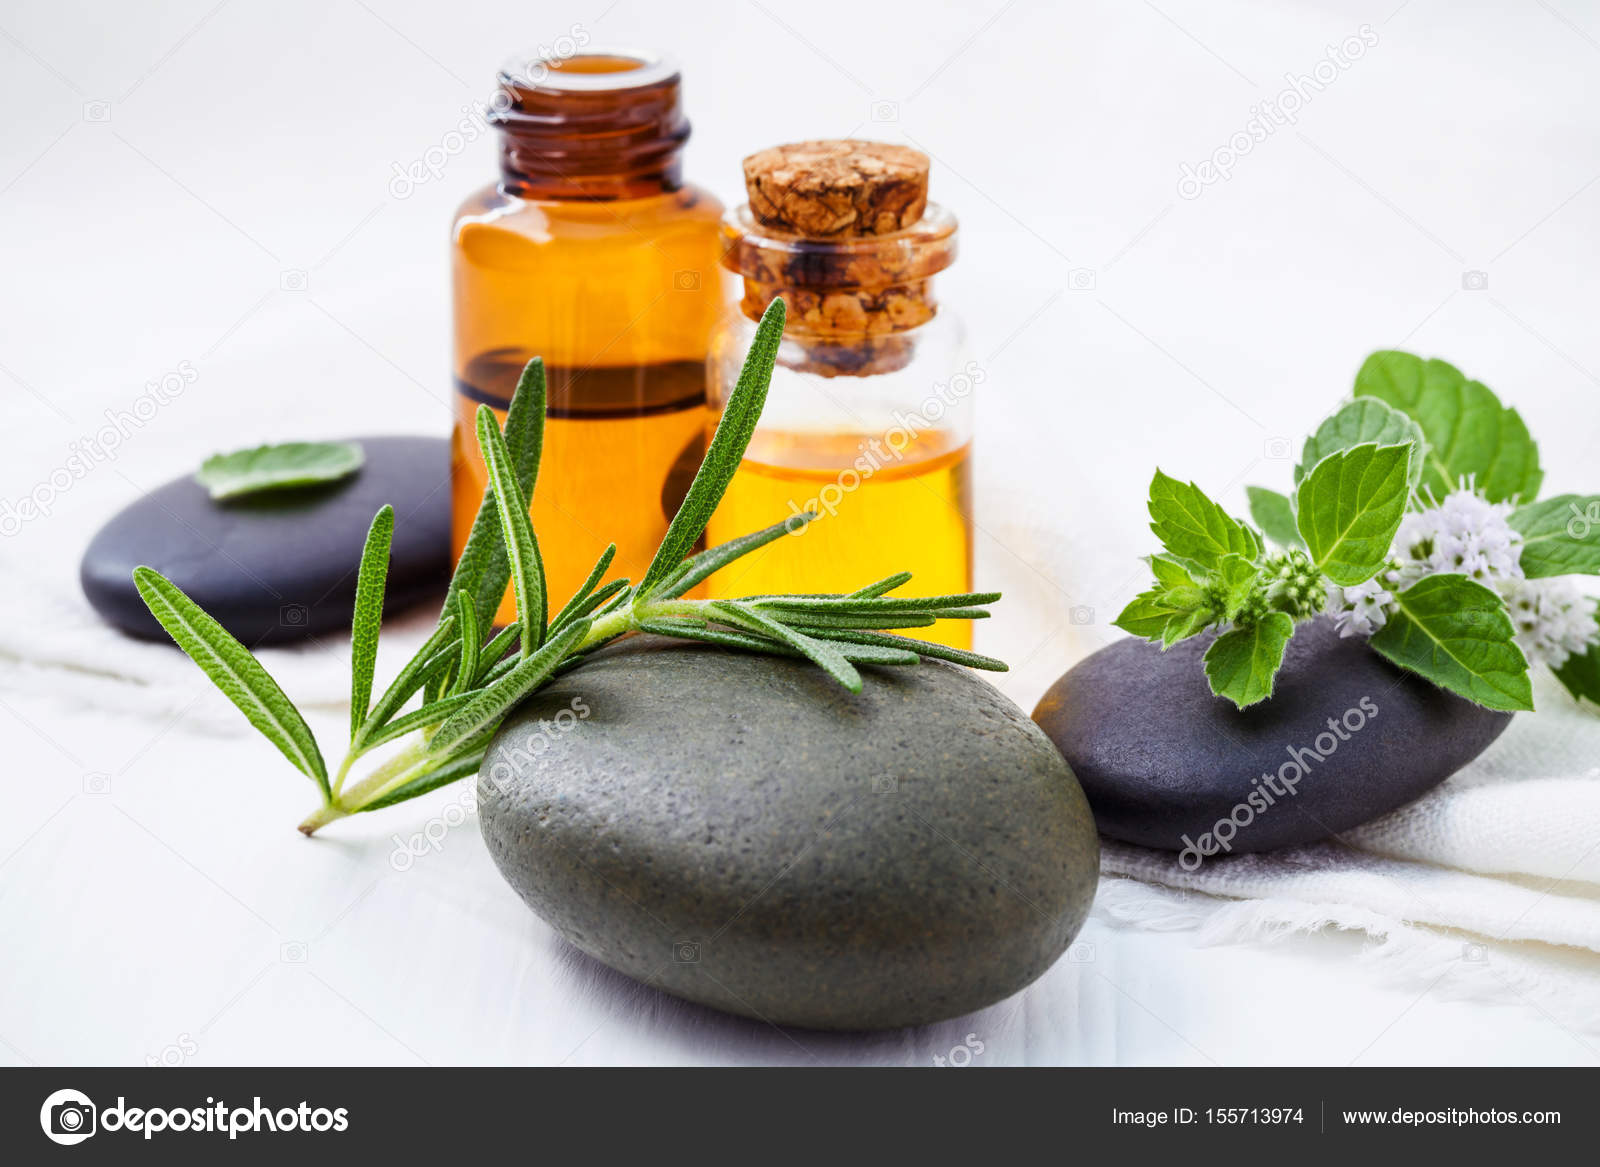 Homemade skin care and body scrubs with